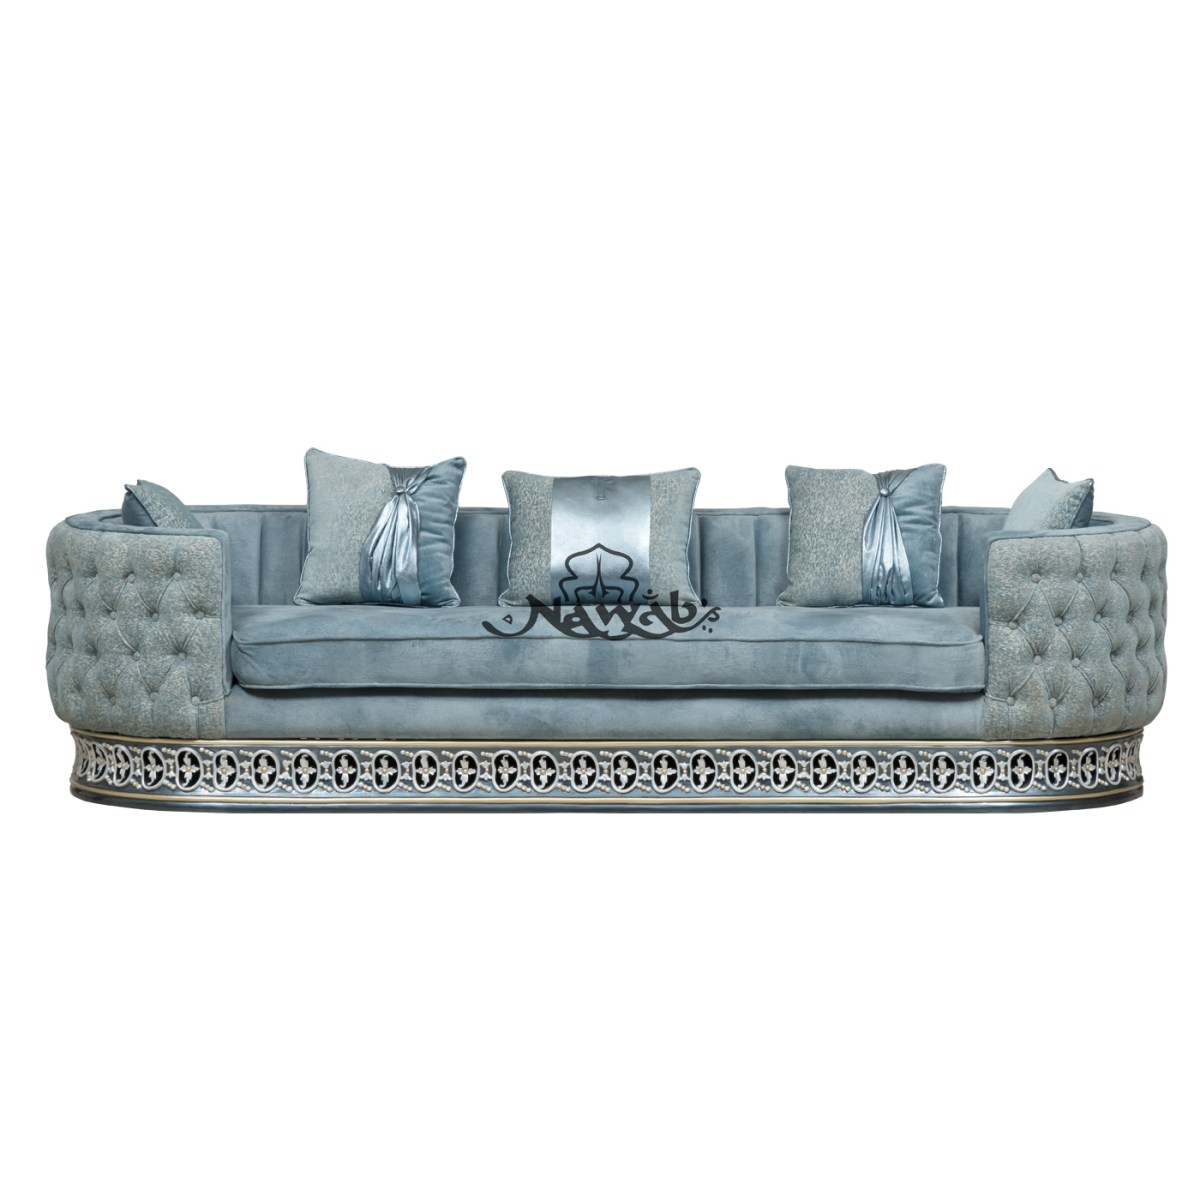 4-seater-teakwood-hand-carved-sofa-blue-white-pearl-polish-with-golden-lining-high-end-suede-upholstery-table-blue-onyx-top